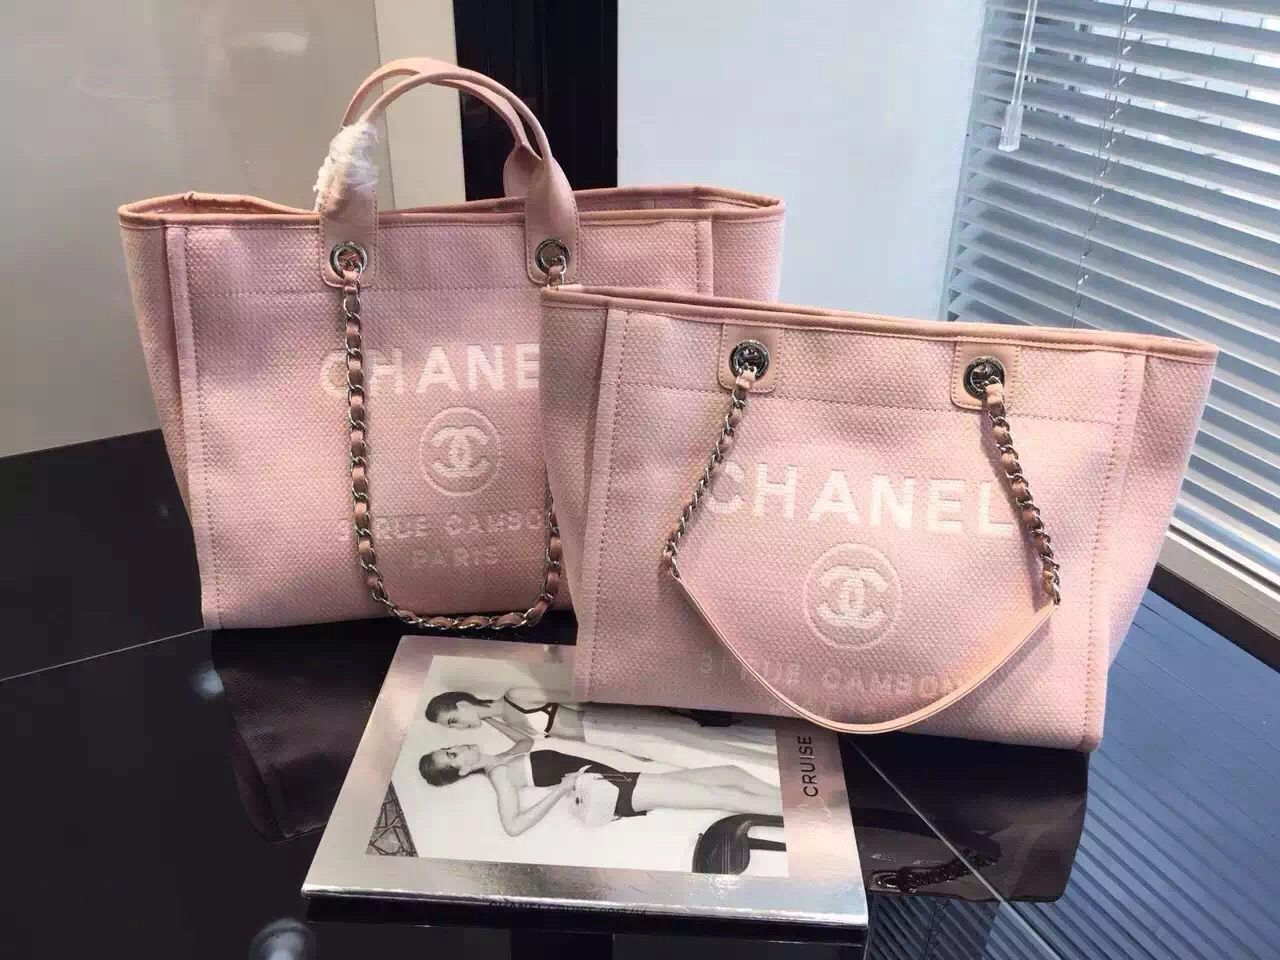 Chanel Toile Deauville Canvas Shopping Tote Bag 2015-2016 Collection ... d4fed89645